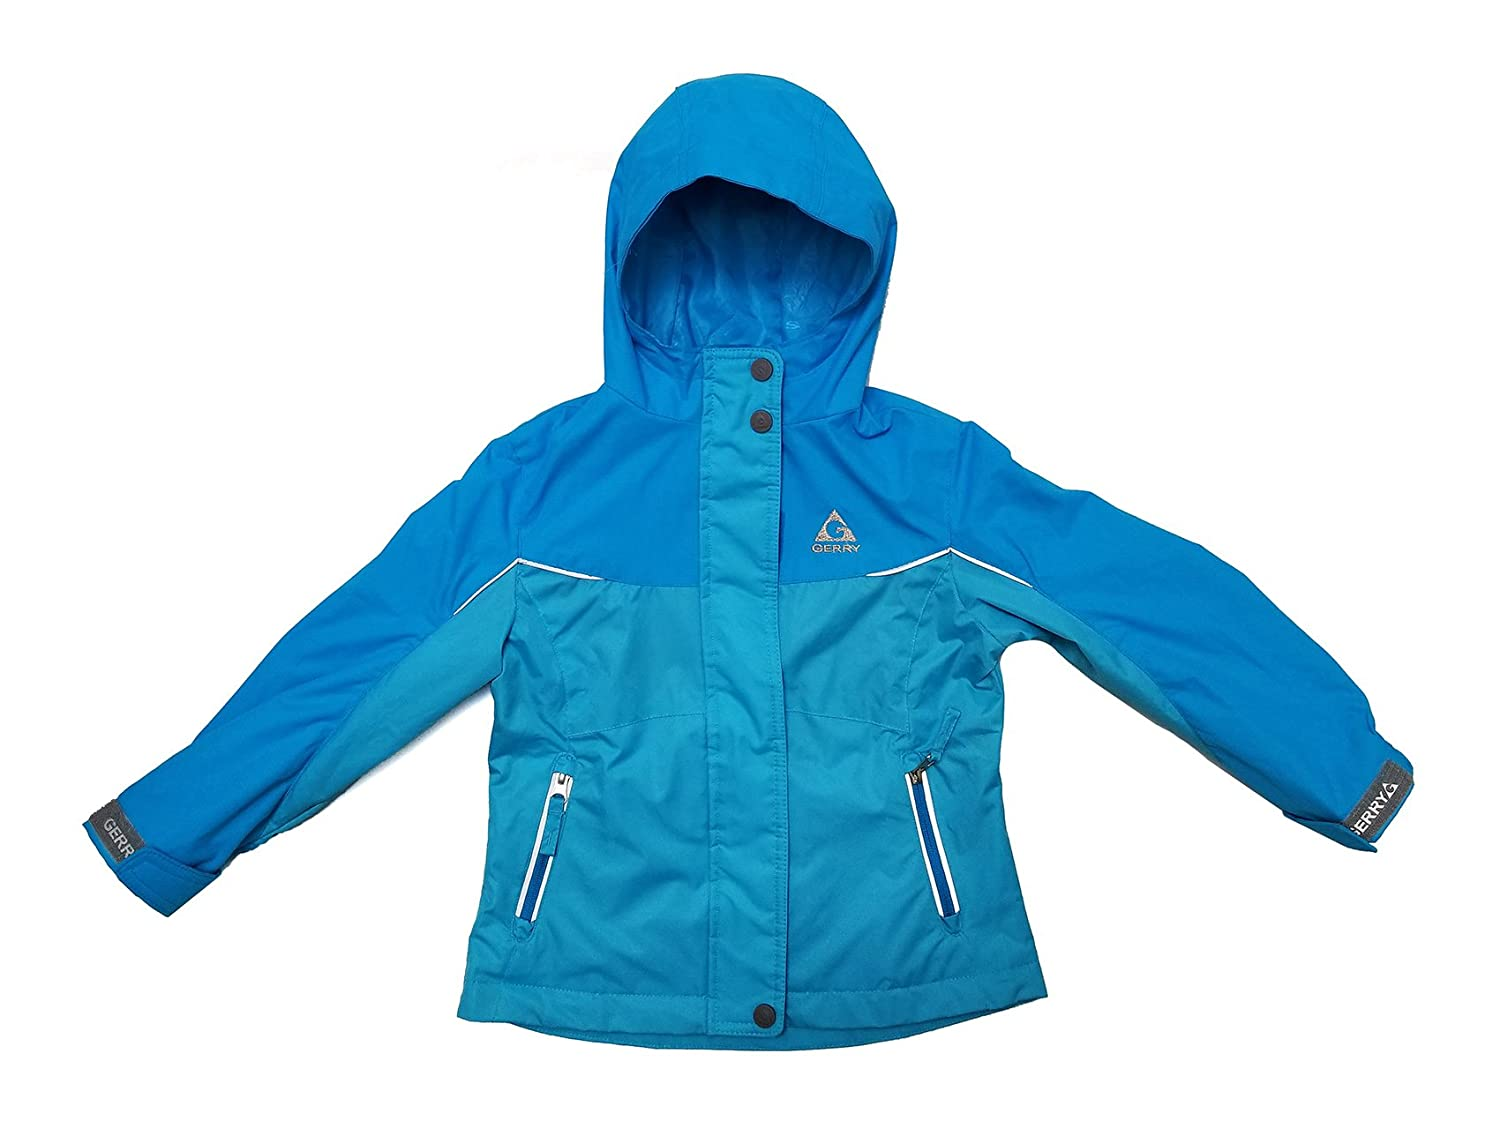 Gerry Girl's Weather Rain and Wind Resistant Performance Jacket - Blue